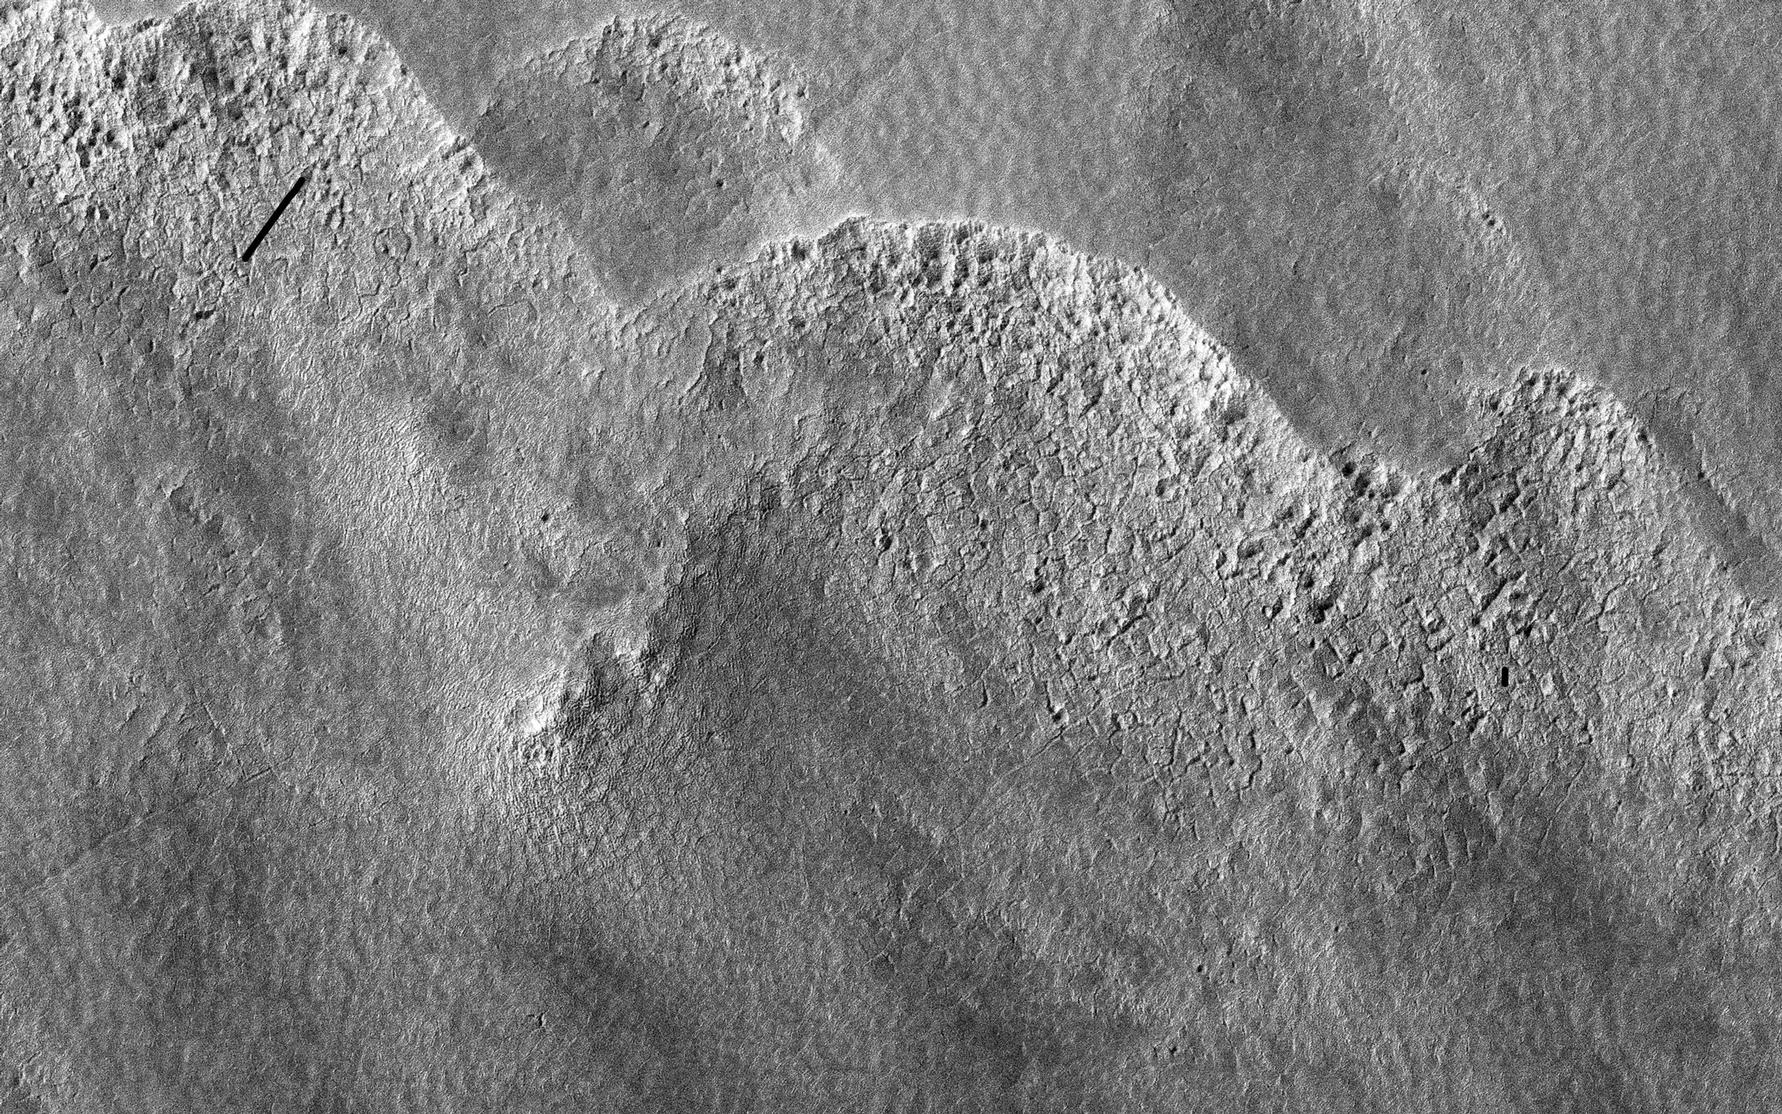 This image is of a portion of the Southern plains region within Hellas, the largest impact basin on Mars, with a diameter of about 2300 kilometers (1400 miles).